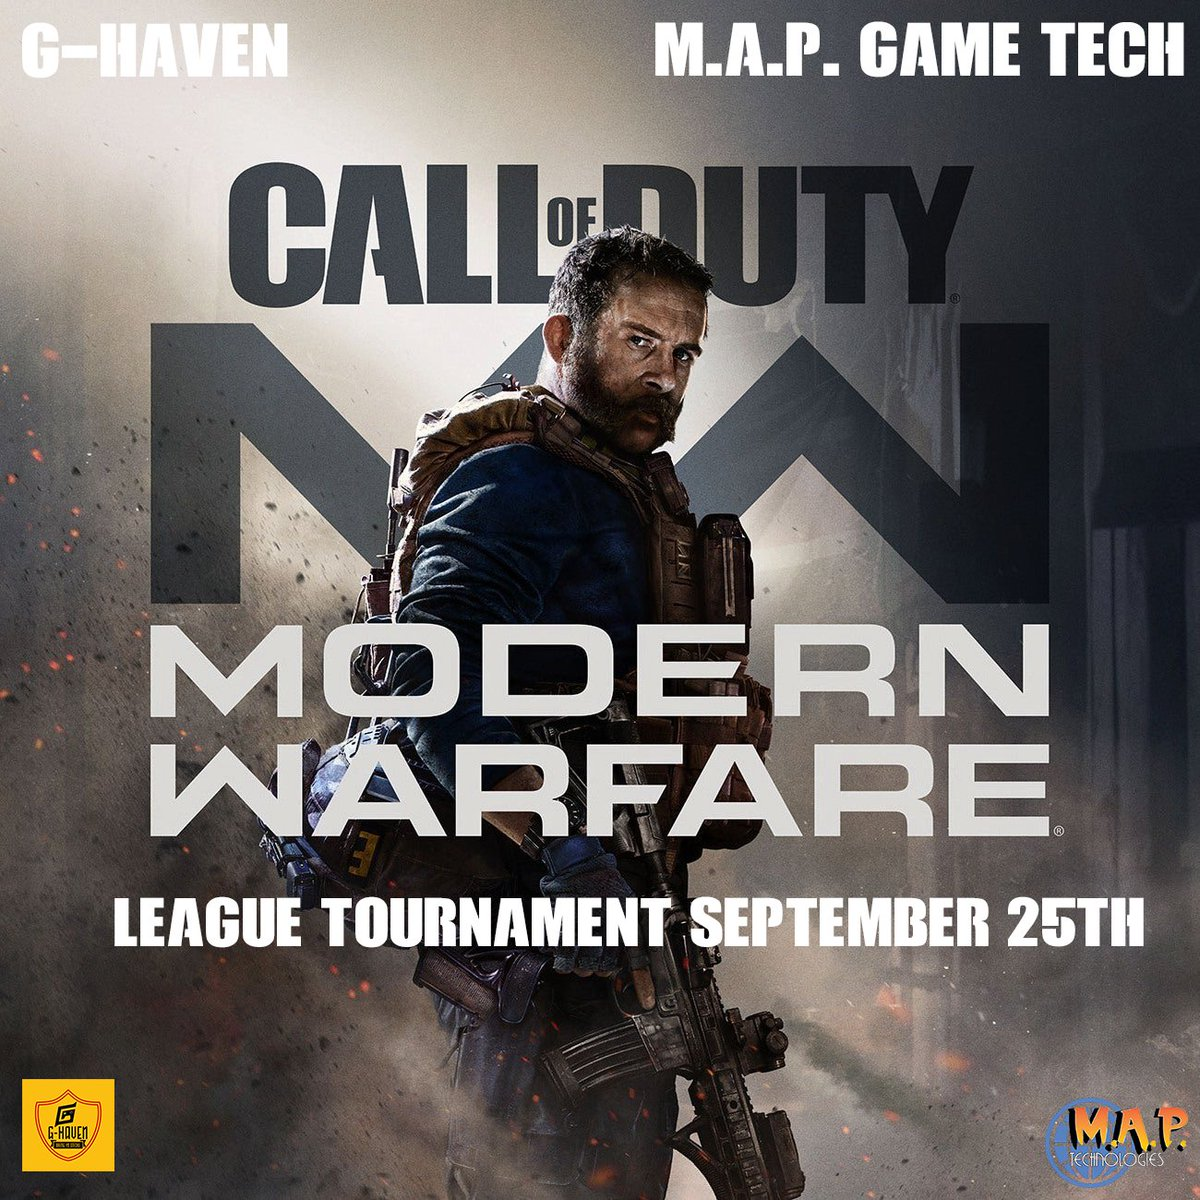 You think you can take on our pro team in COD Warzone?! Come at us and Bring Yo Sticks!!! DM us to challenge the team #BringYoSticks #gaming #GhavenEsports #gamer #twitchstreamer #xbox #Monster #Activision #RedBull #ElectronicArts #Gamestop #Honda #cod #CoD2020 #CoDMW https://t.co/wipX6P69pW